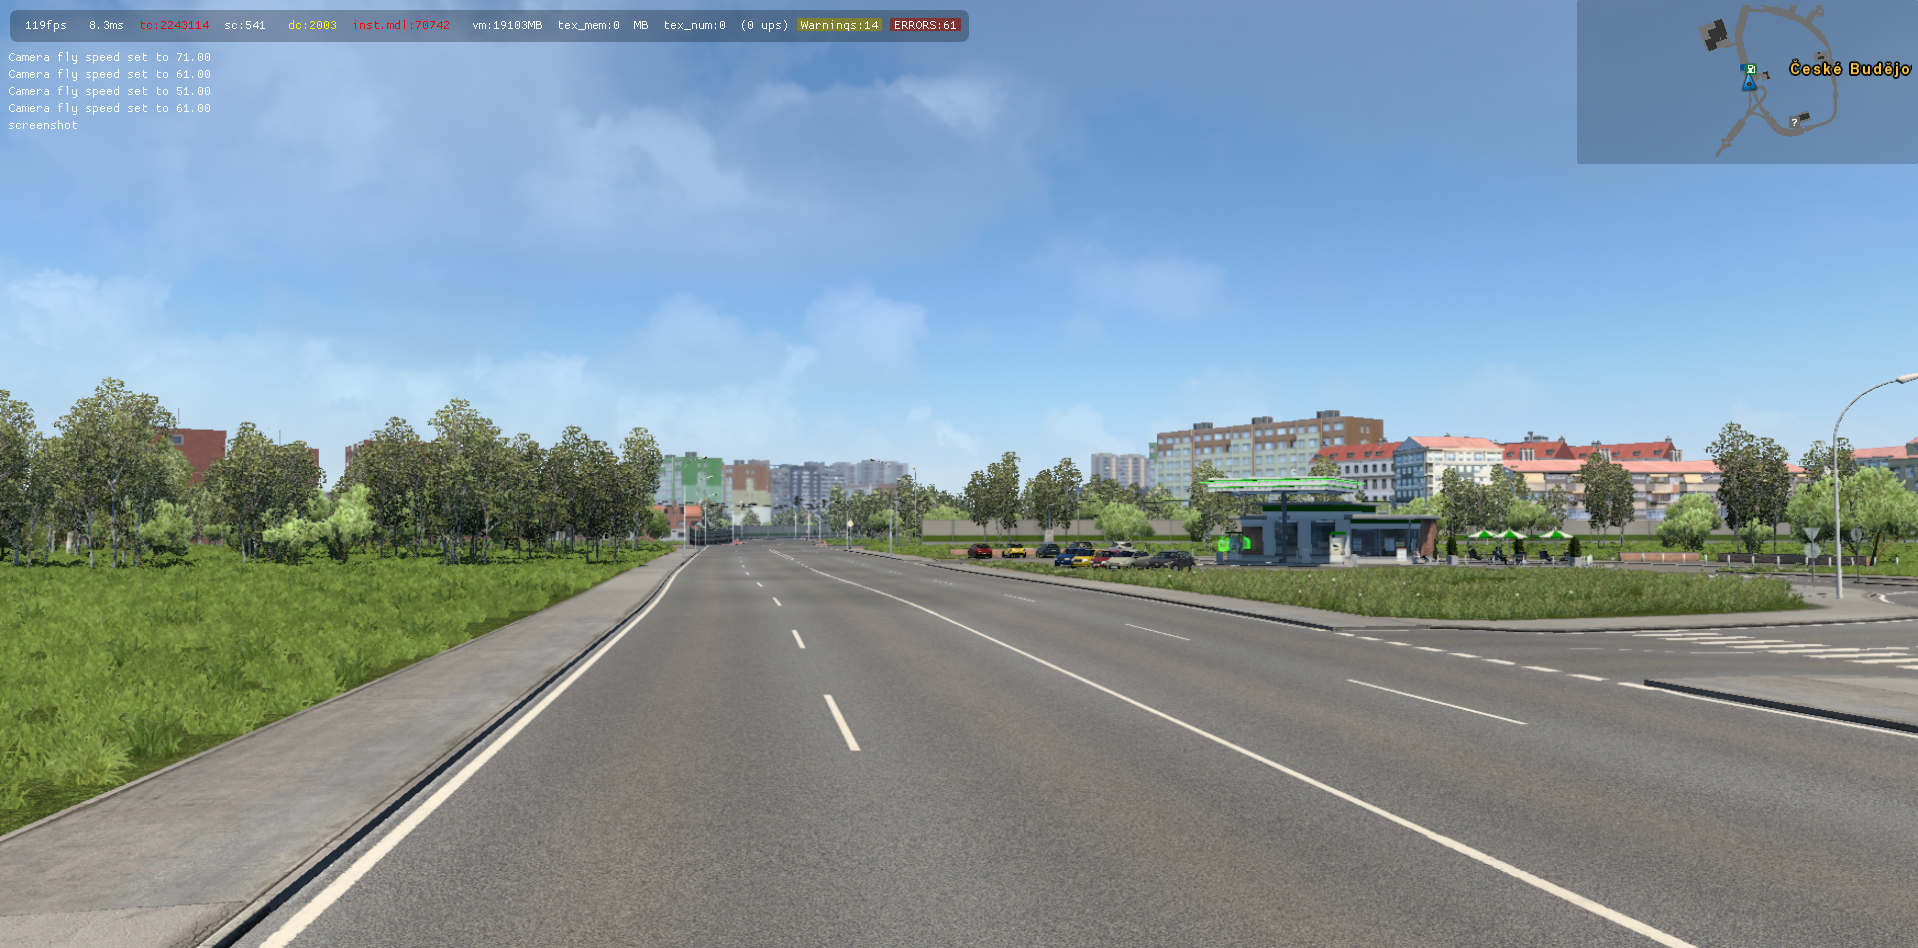 ets2_20210816_212901_00.png